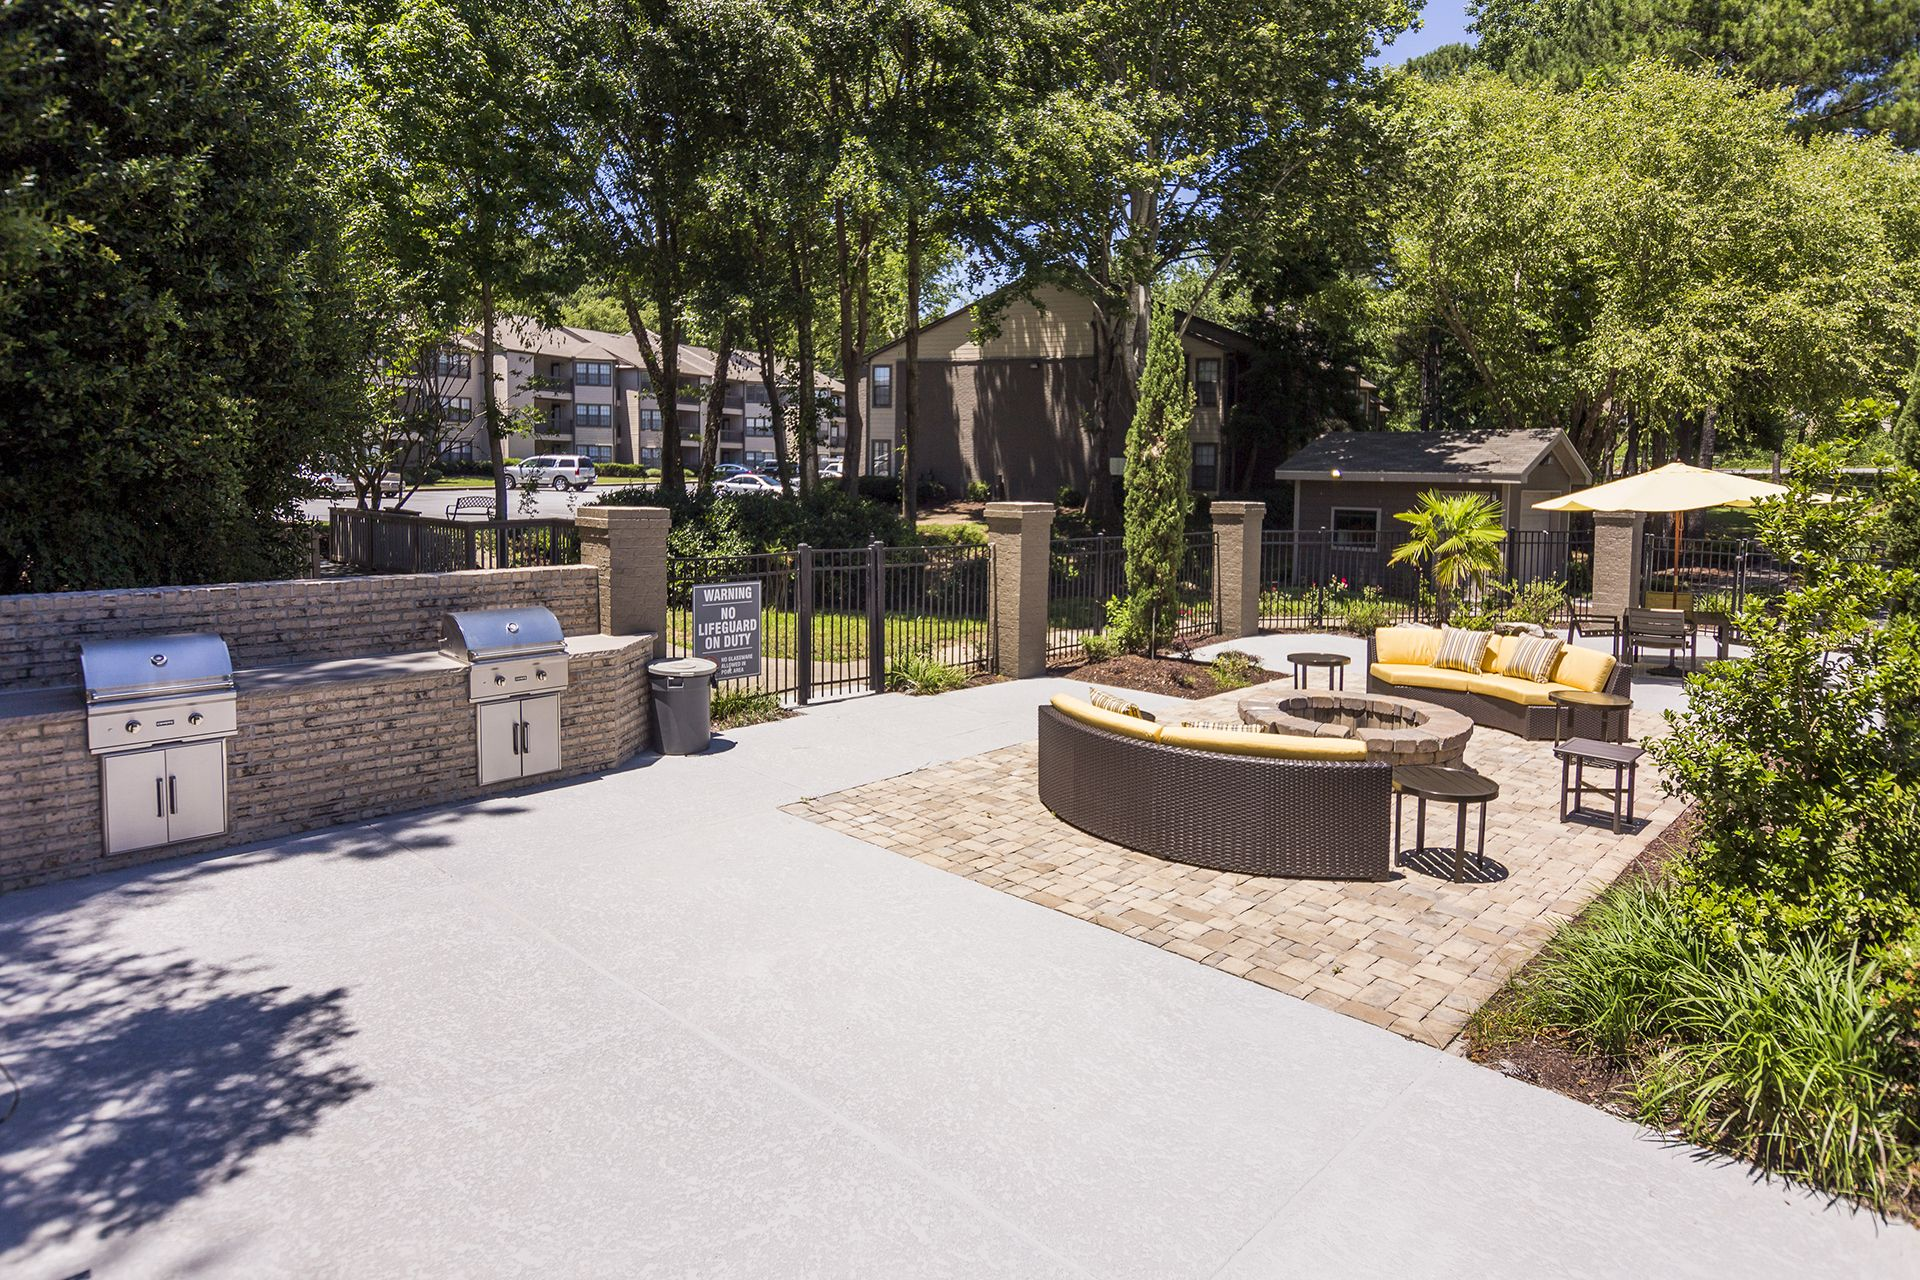 Outdoor grilling area with seating and fire pit